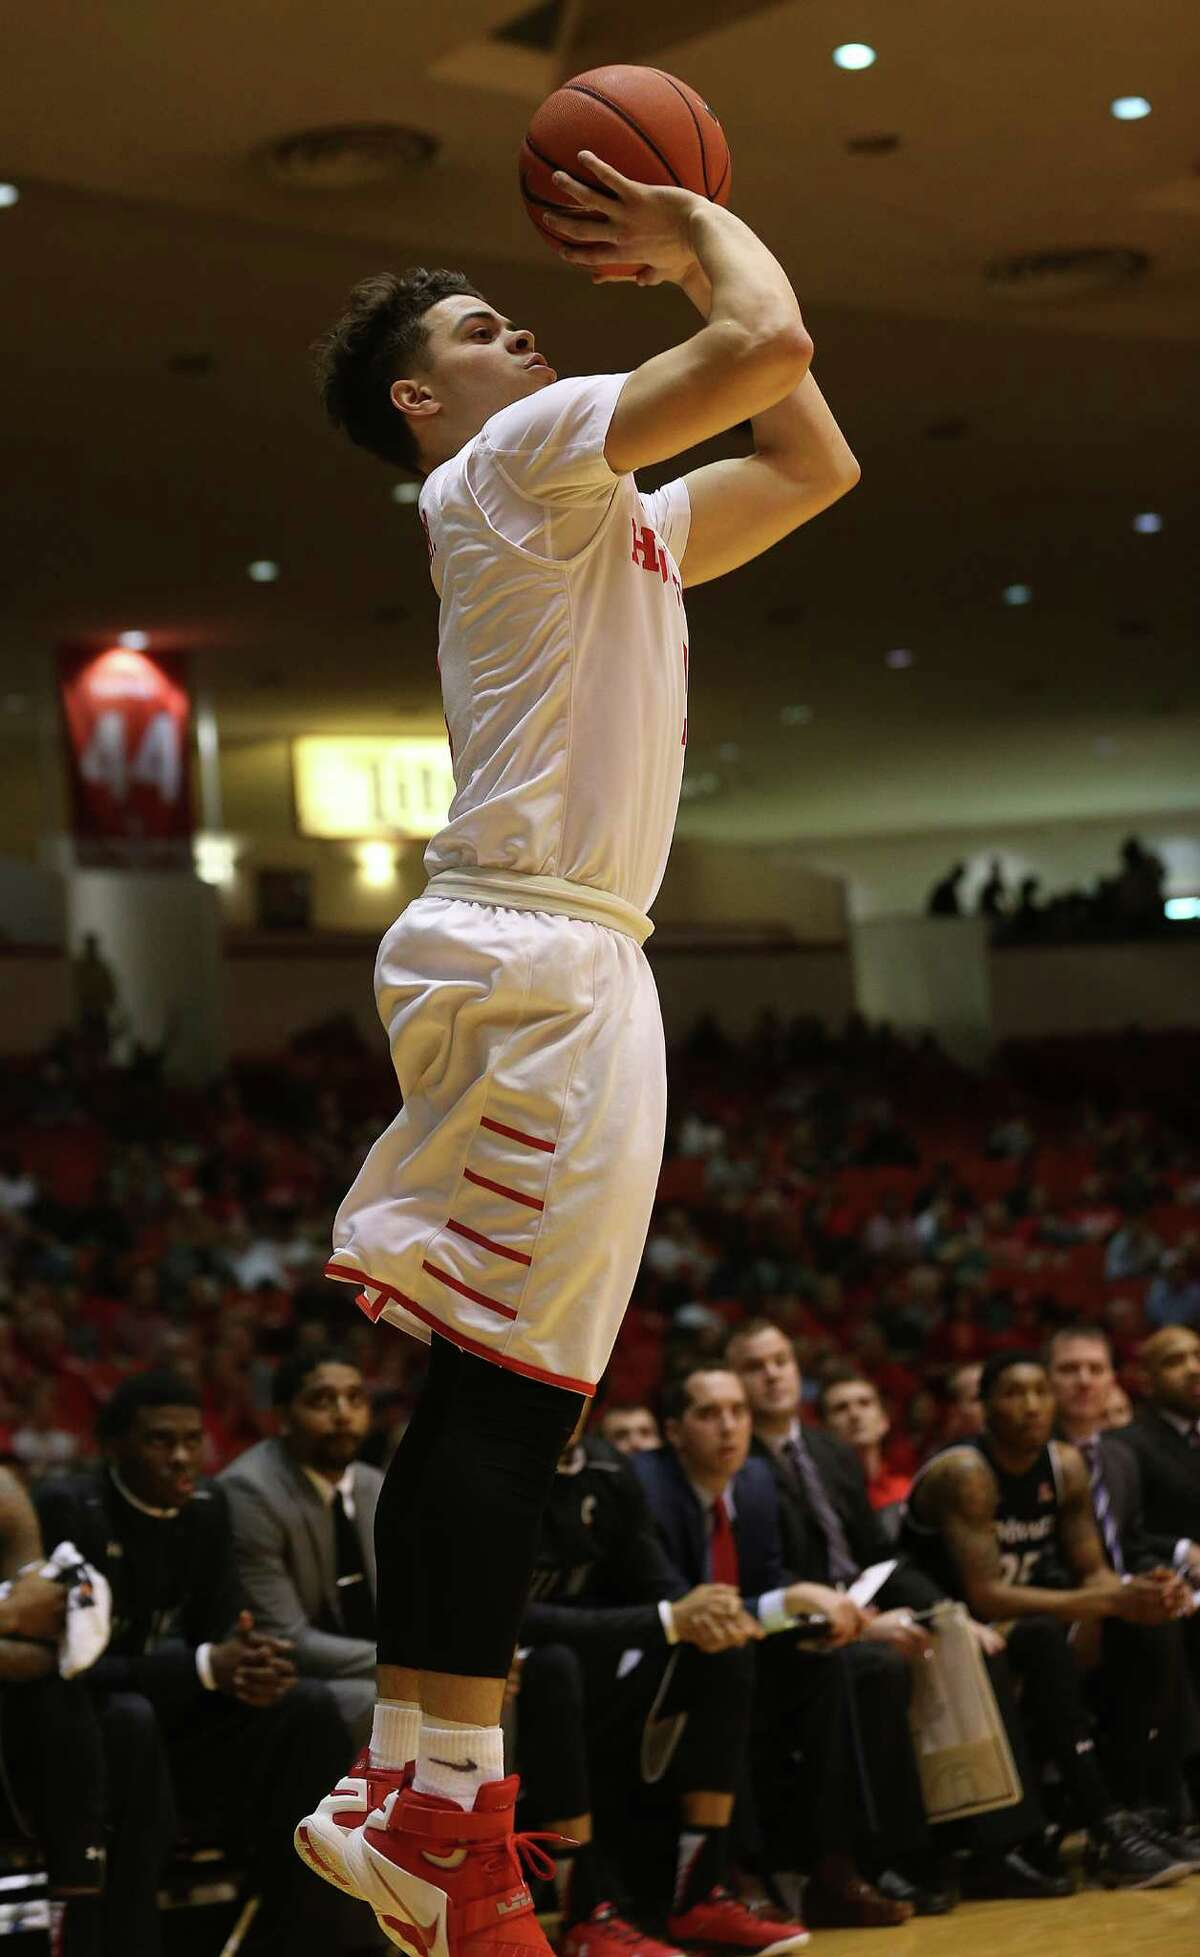 Houston Cougars guard Rob Gray Jr. (2) puts up a three-point shot in the first half of game action against Cincinnati Bearcats at Hofheinz Pavilion on Thursday, March 3, 2016, in Houston. Cougars won 69-56.